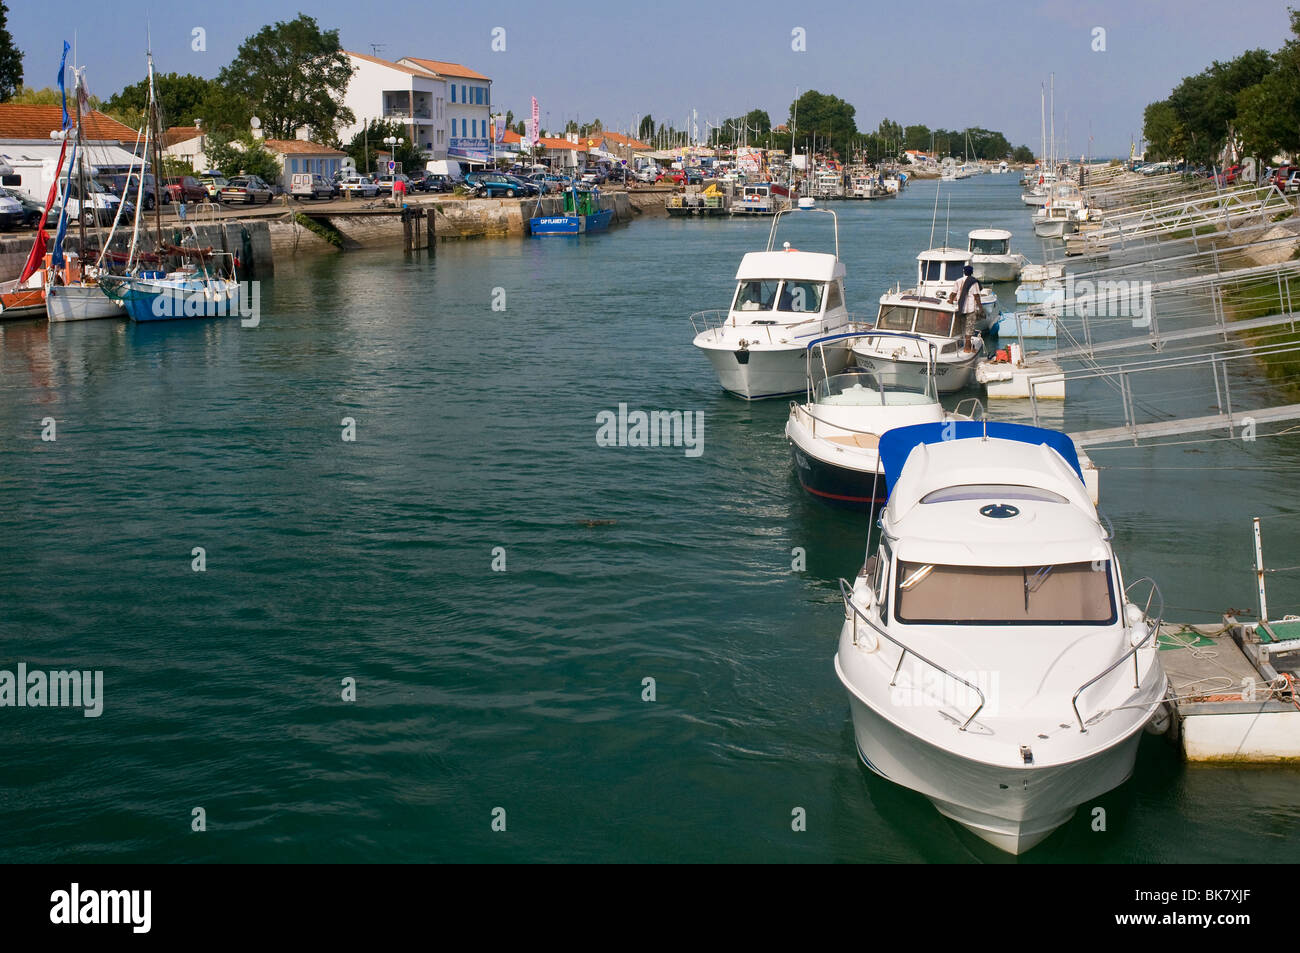 Boyardville fairway channel (Oléron Island, France) - Stock Image